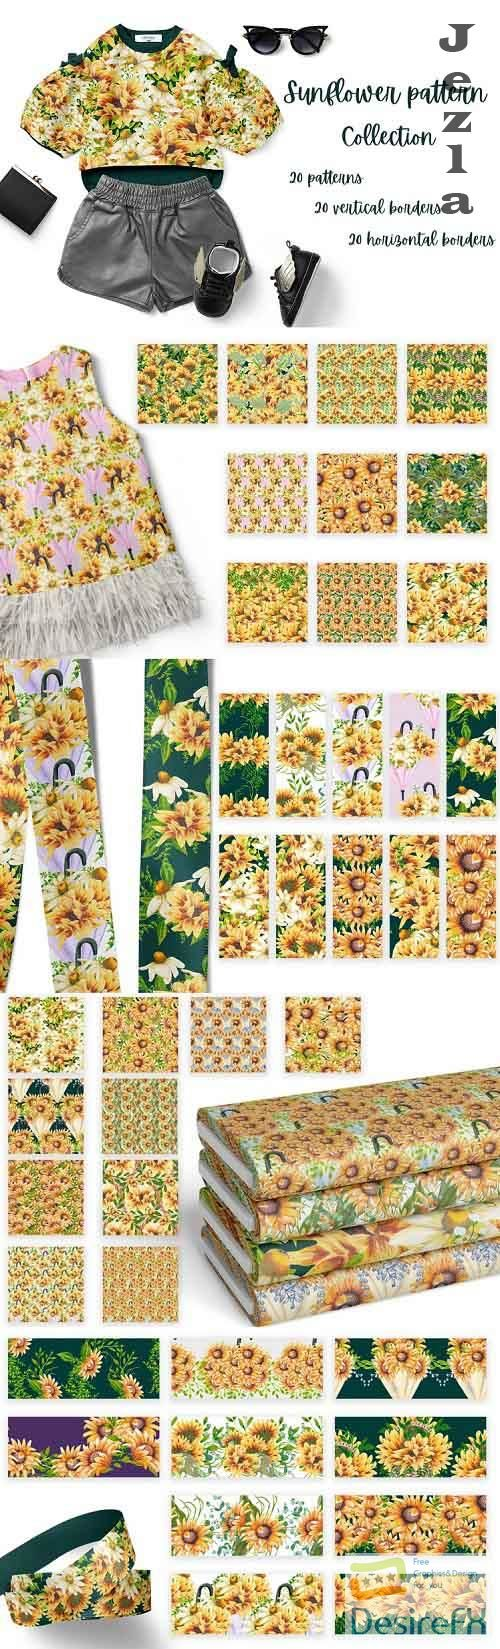 Sunflower Pattern Collection - 585844